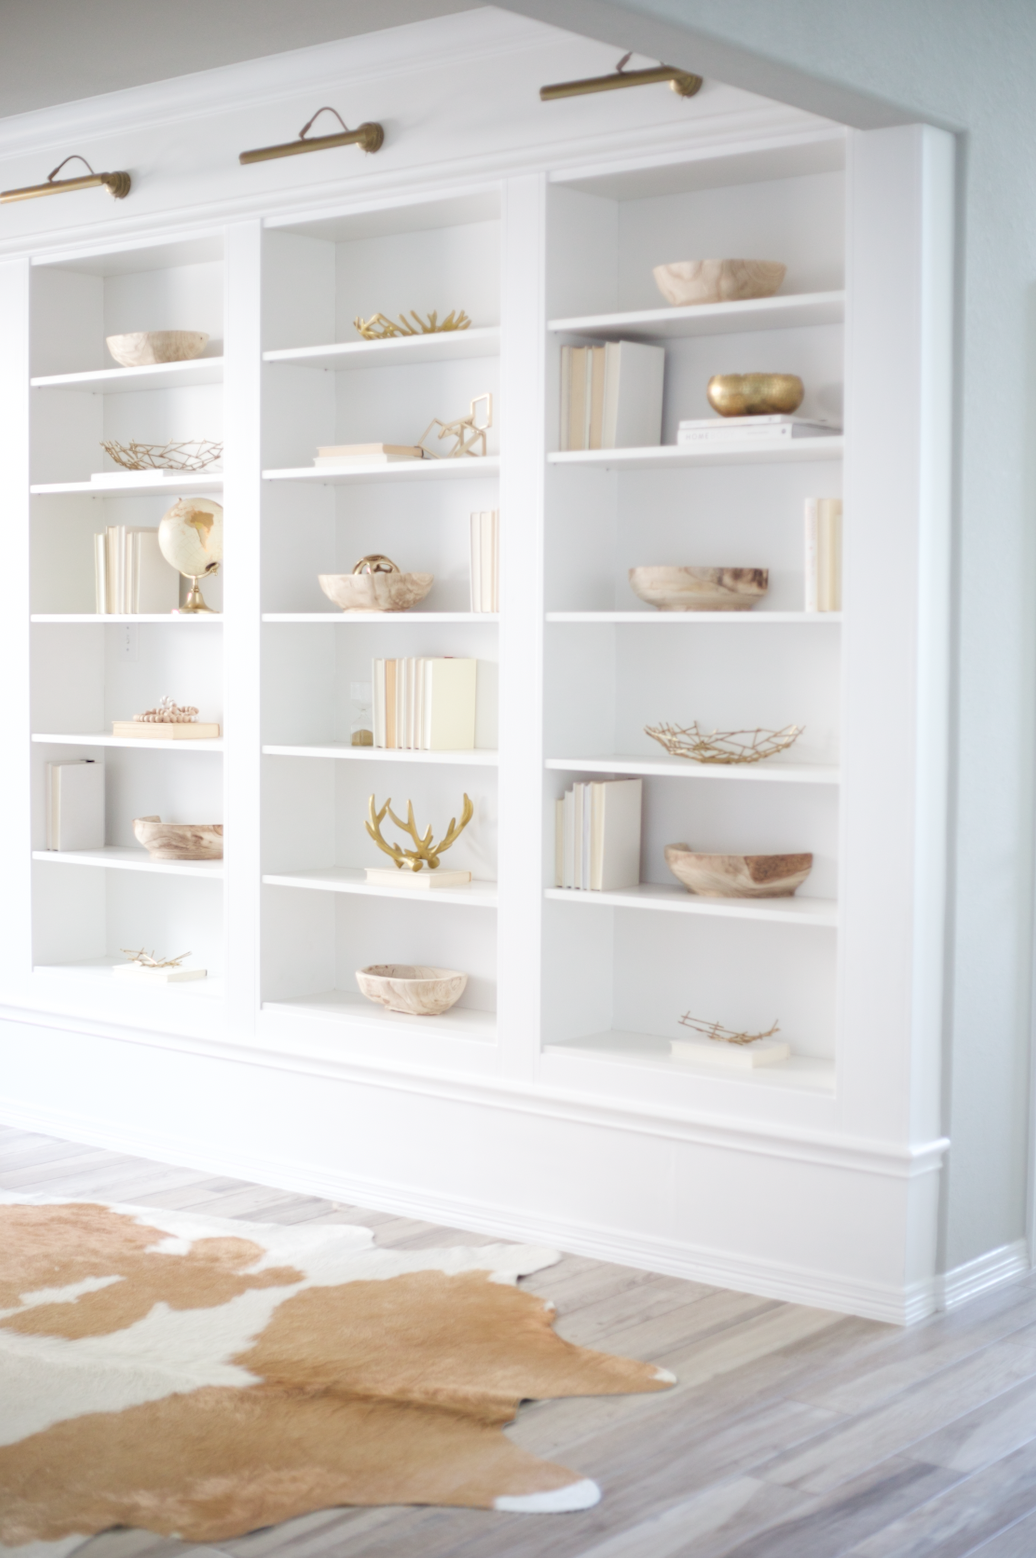 Shelf Styling Tips for the Minimalist